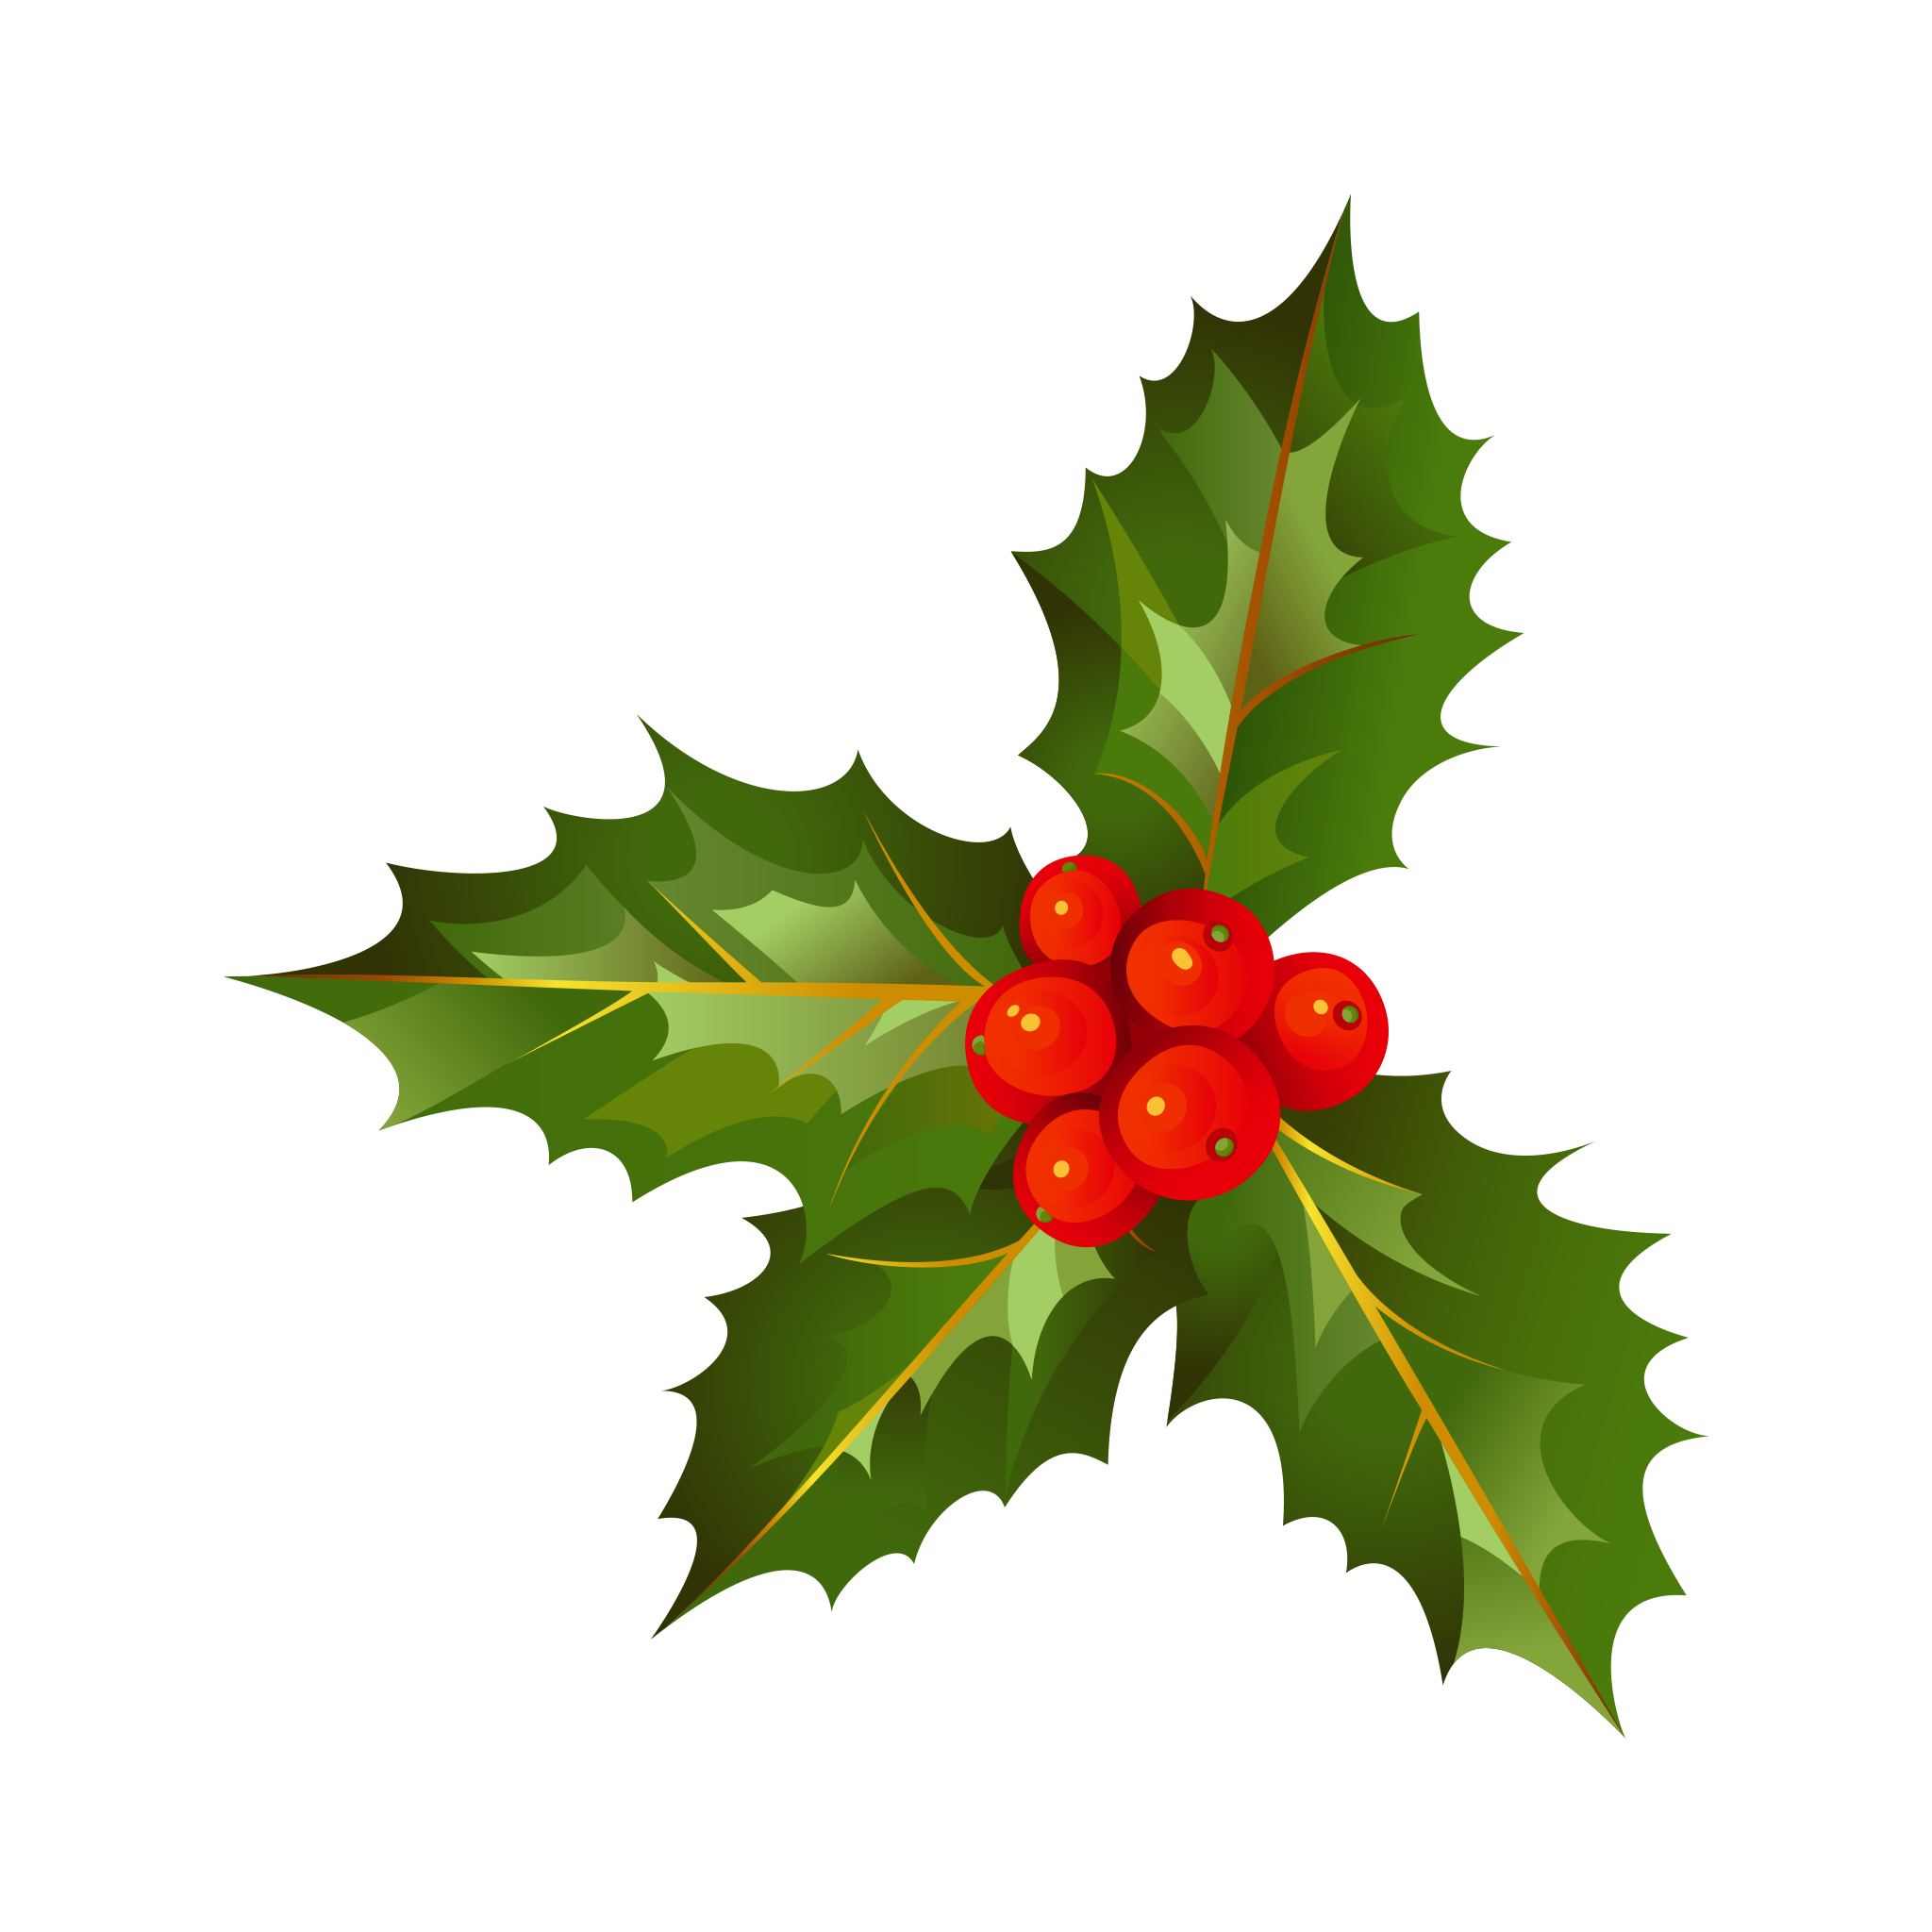 Transparent holly decoration. Christmas with leave png